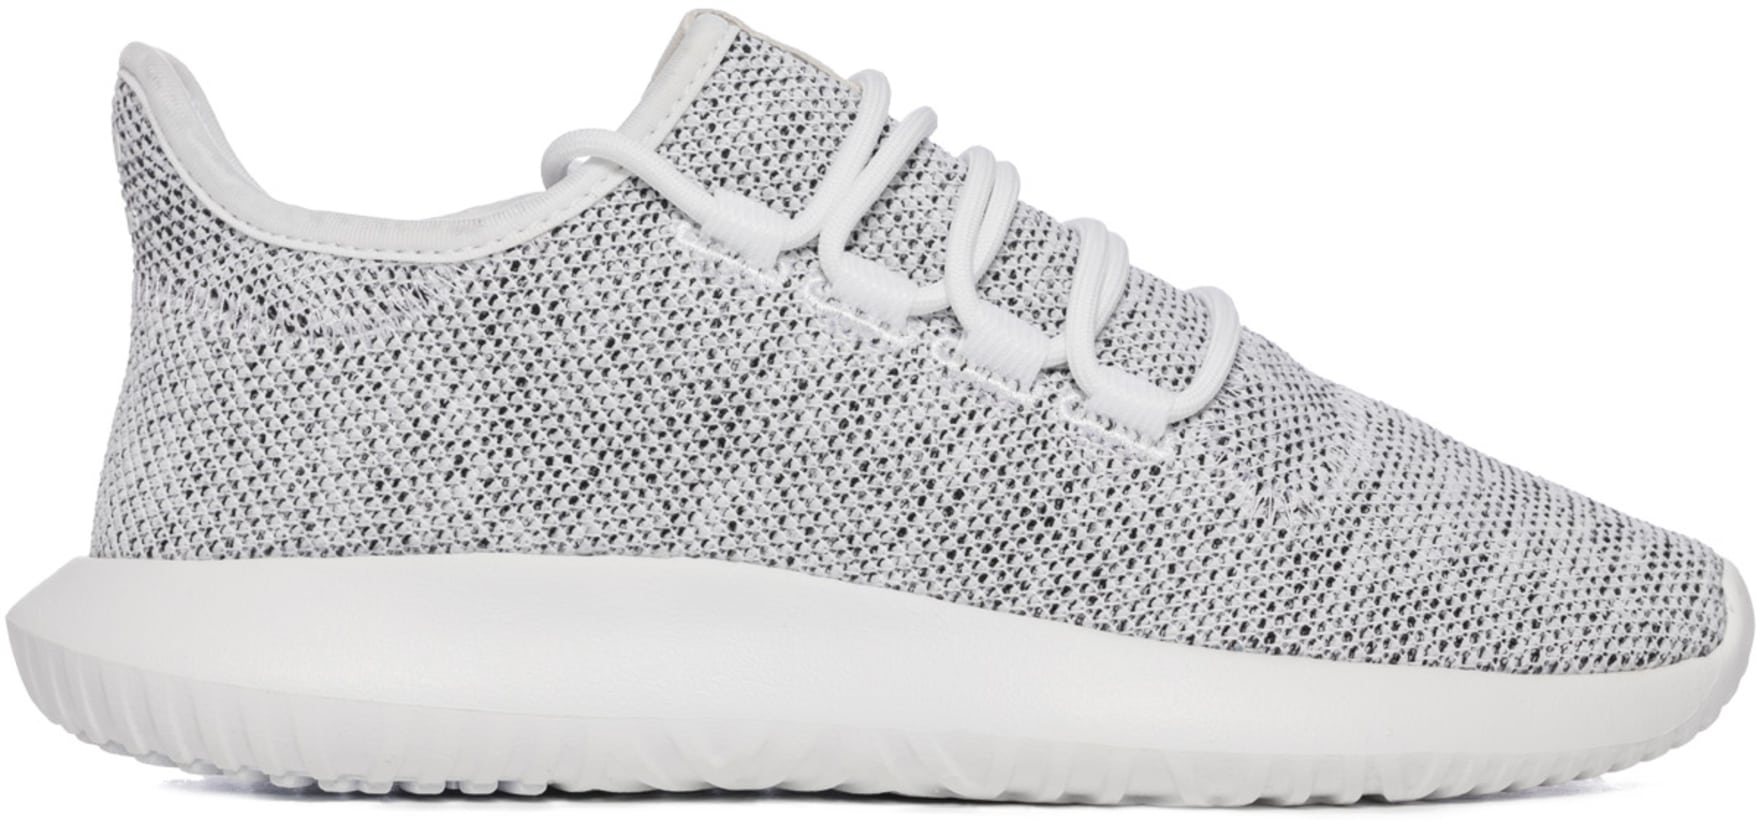 save off 74ab8 bfb28 ... hot adidas originals tubular shadow new runner white pearl grey haze  influence u 8f7cc a03b5